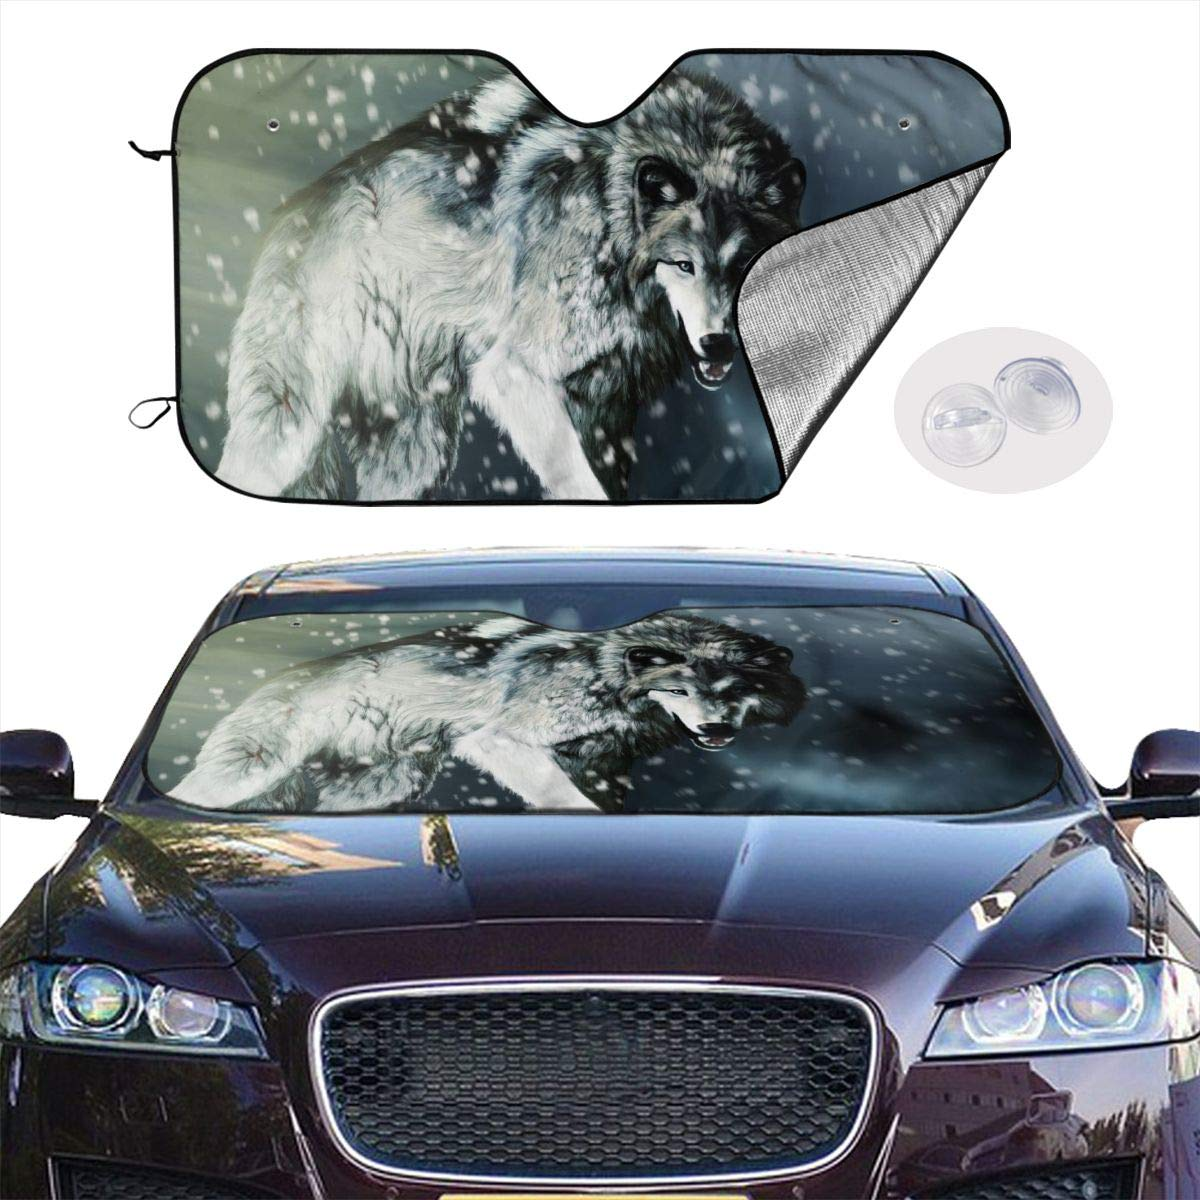 Cartoon Anime Wolf Car Windshield Sun Shade - Blocks UV Rays Sun Visor Protector, Sunshade to Keep Your Vehicle Cool and Damage Free,Easy to Use, Universal Size (S 51.2x27.5 Inches) by HE - Fashion